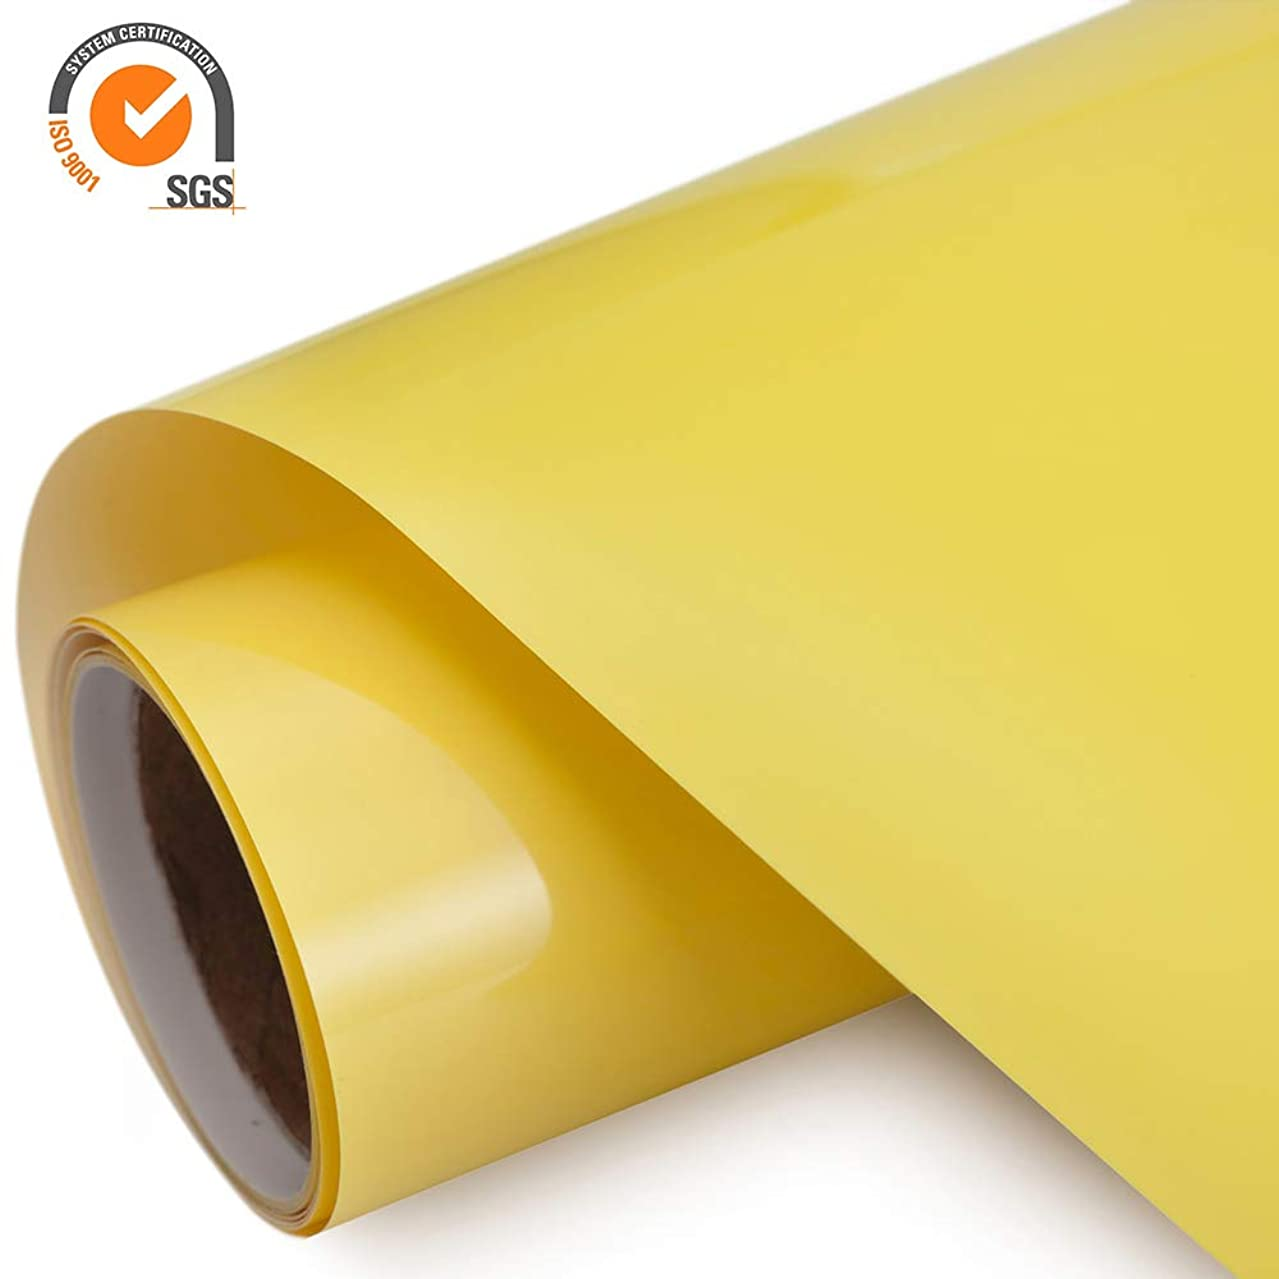 Heat Transfer Vinyl HTV Rolls for T Shirts 12in.x5ft. – Easy Weed Iron on HTV Vinyl Compatible with Silhouette Cameo & Cricut by TransWonder (Lime Yellow)